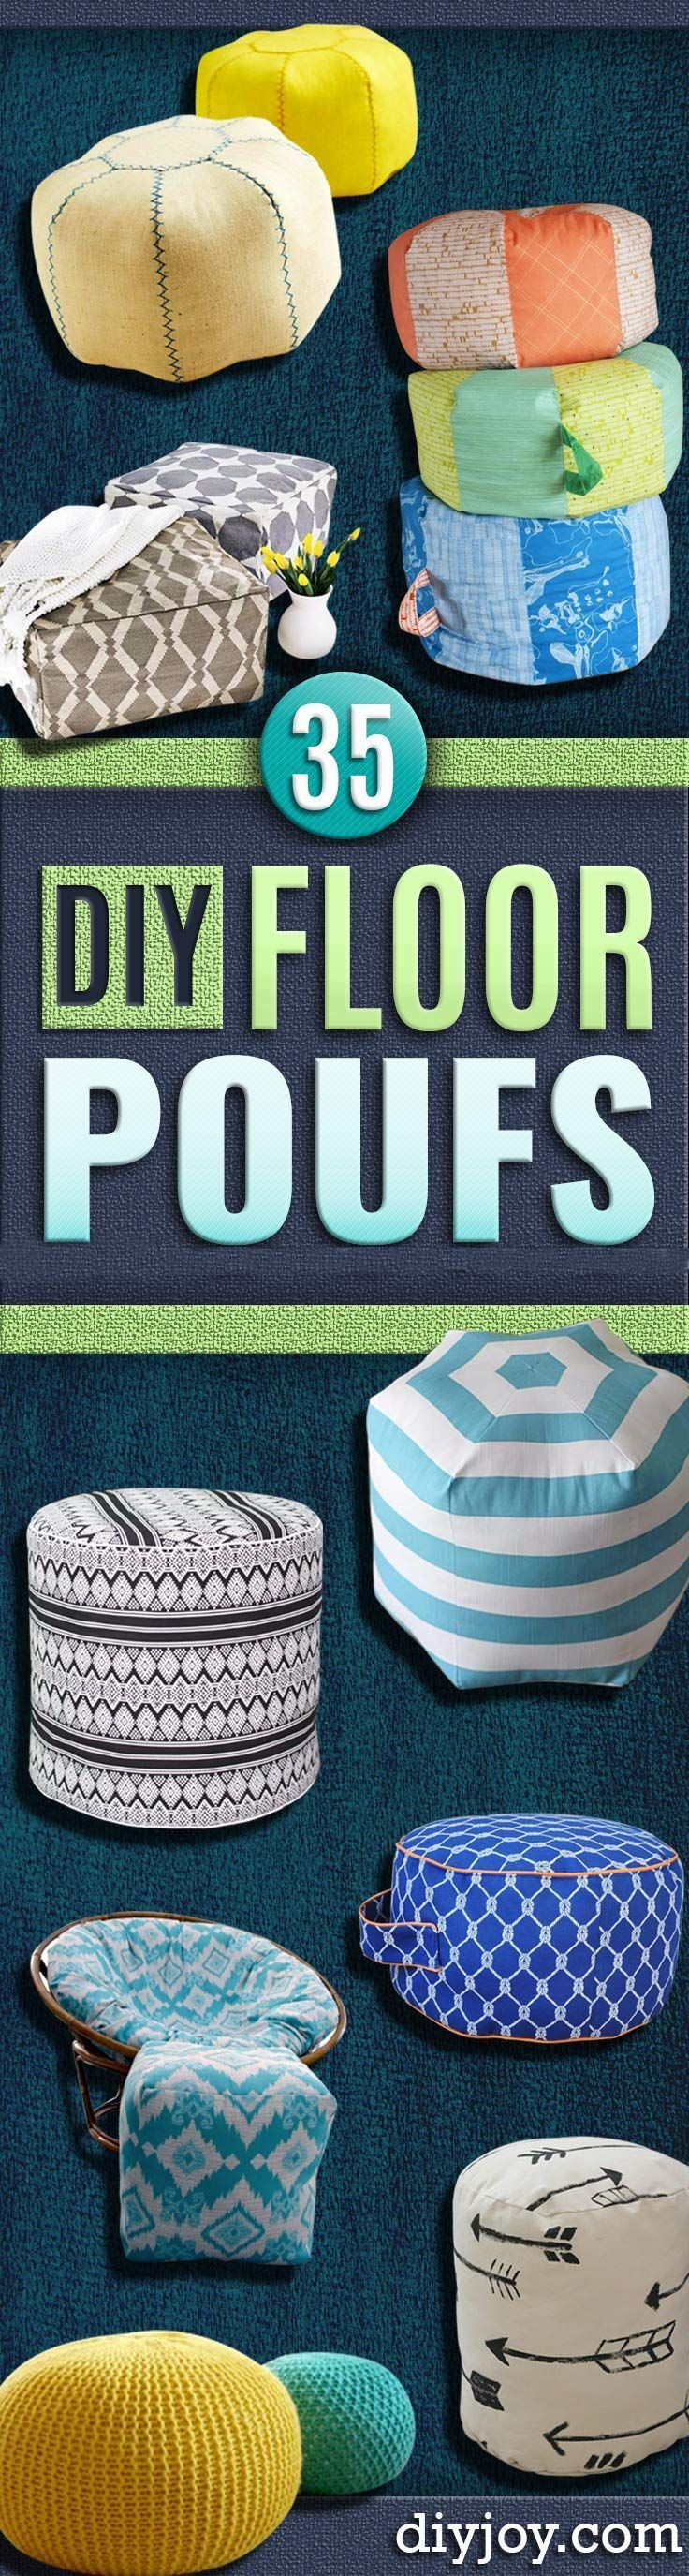 Fabulous DIY Poufs and Ottomans - Step by Step Tutorials and Easy Patterns for Cool Home Decor. Crochet, No Sew, Leather, Moroccan Boho, Knit and Fun Fur Projects and Chair Ideas http://diyjoy.com/diy-floor-poufs